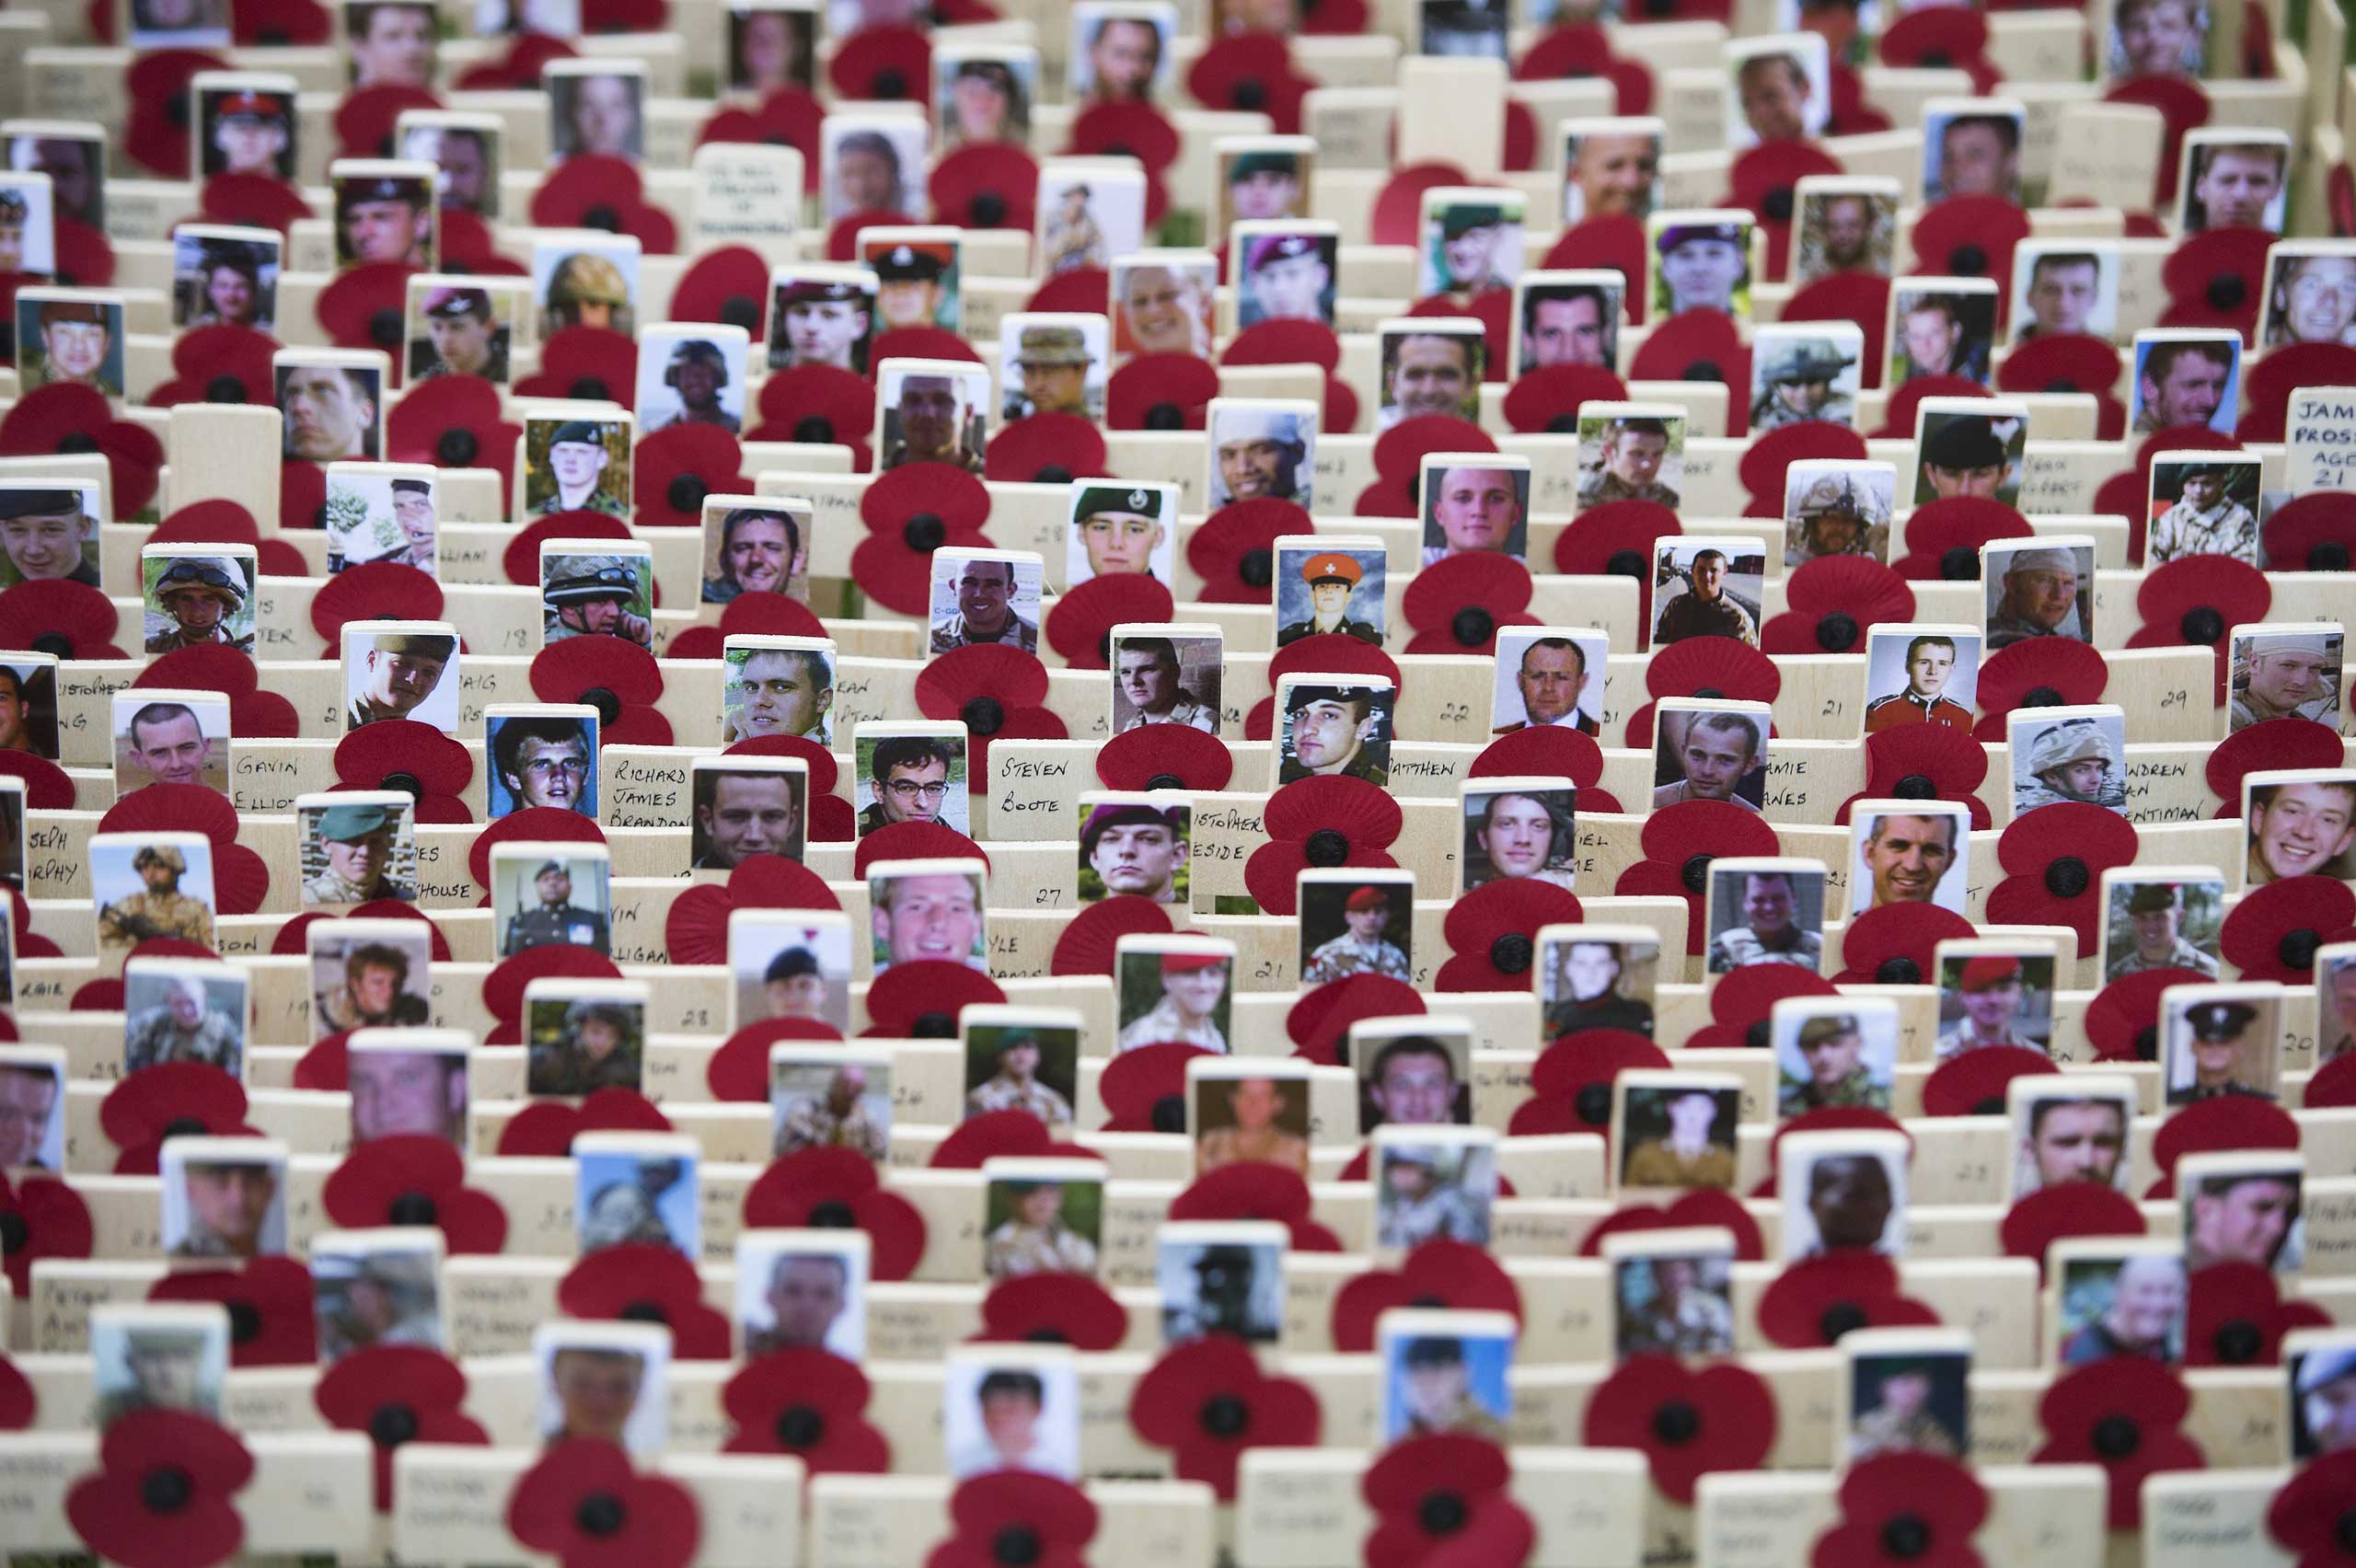 Nov. 6, 2014. Photographs of servicemen who lost their lives in Afghanistan are placed on crosses at the Field of Remembrance at Westminster Abbey, London.